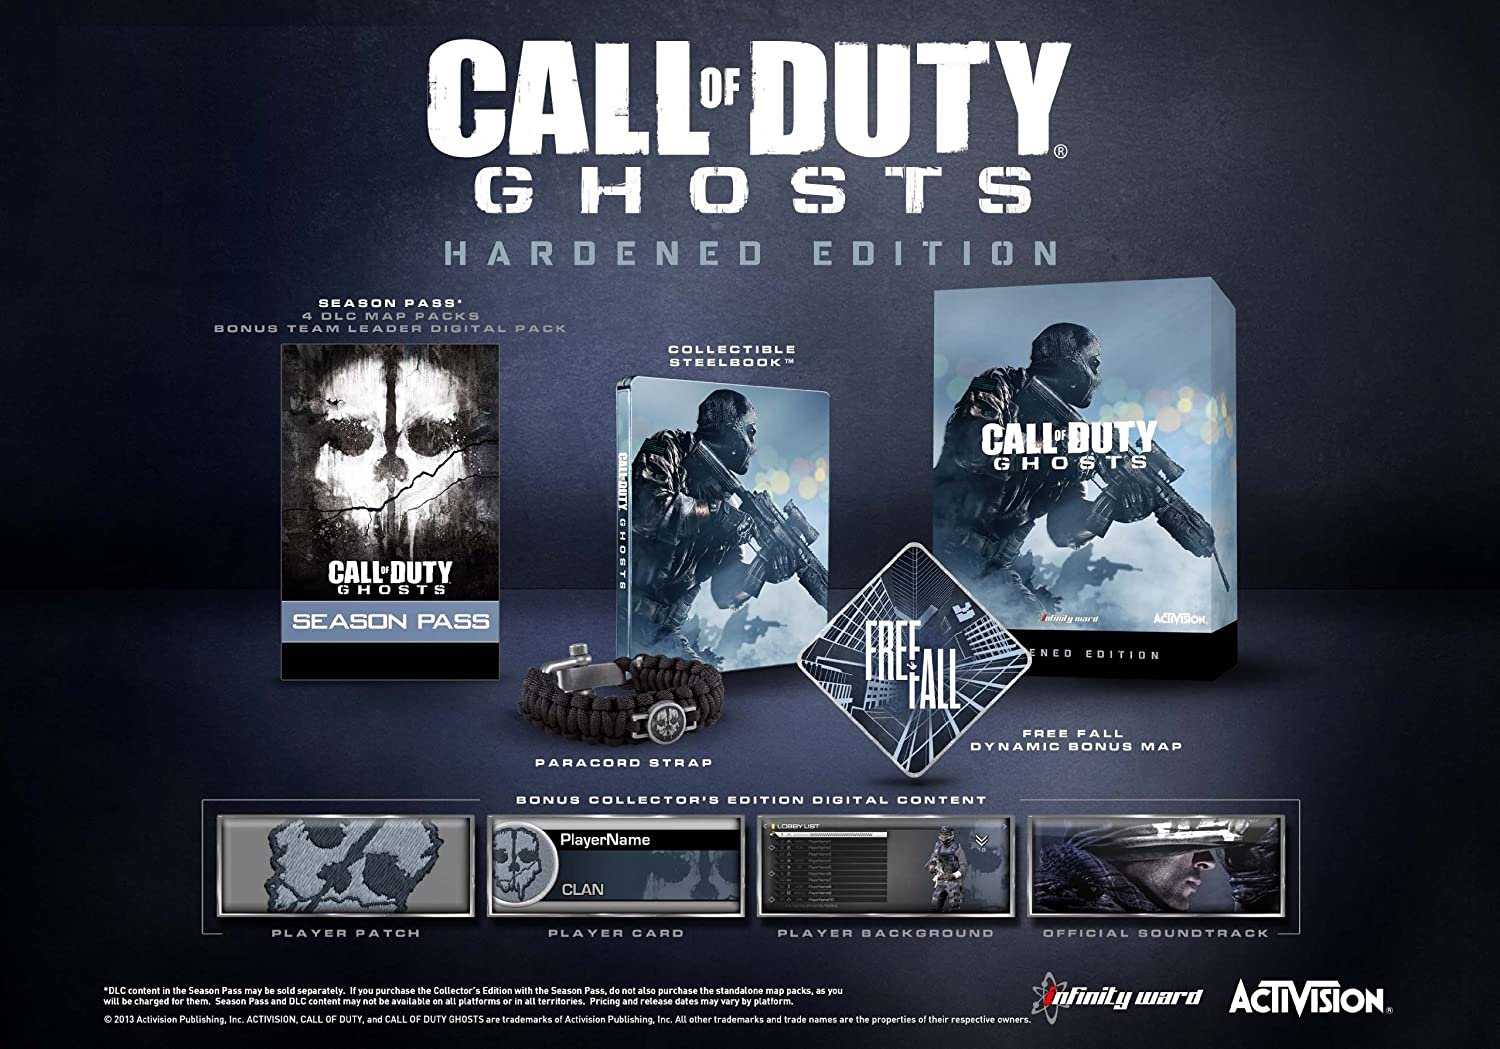 Amazon.com: Call of Duty: Ghosts Hardened Edition - Xbox One: Video on